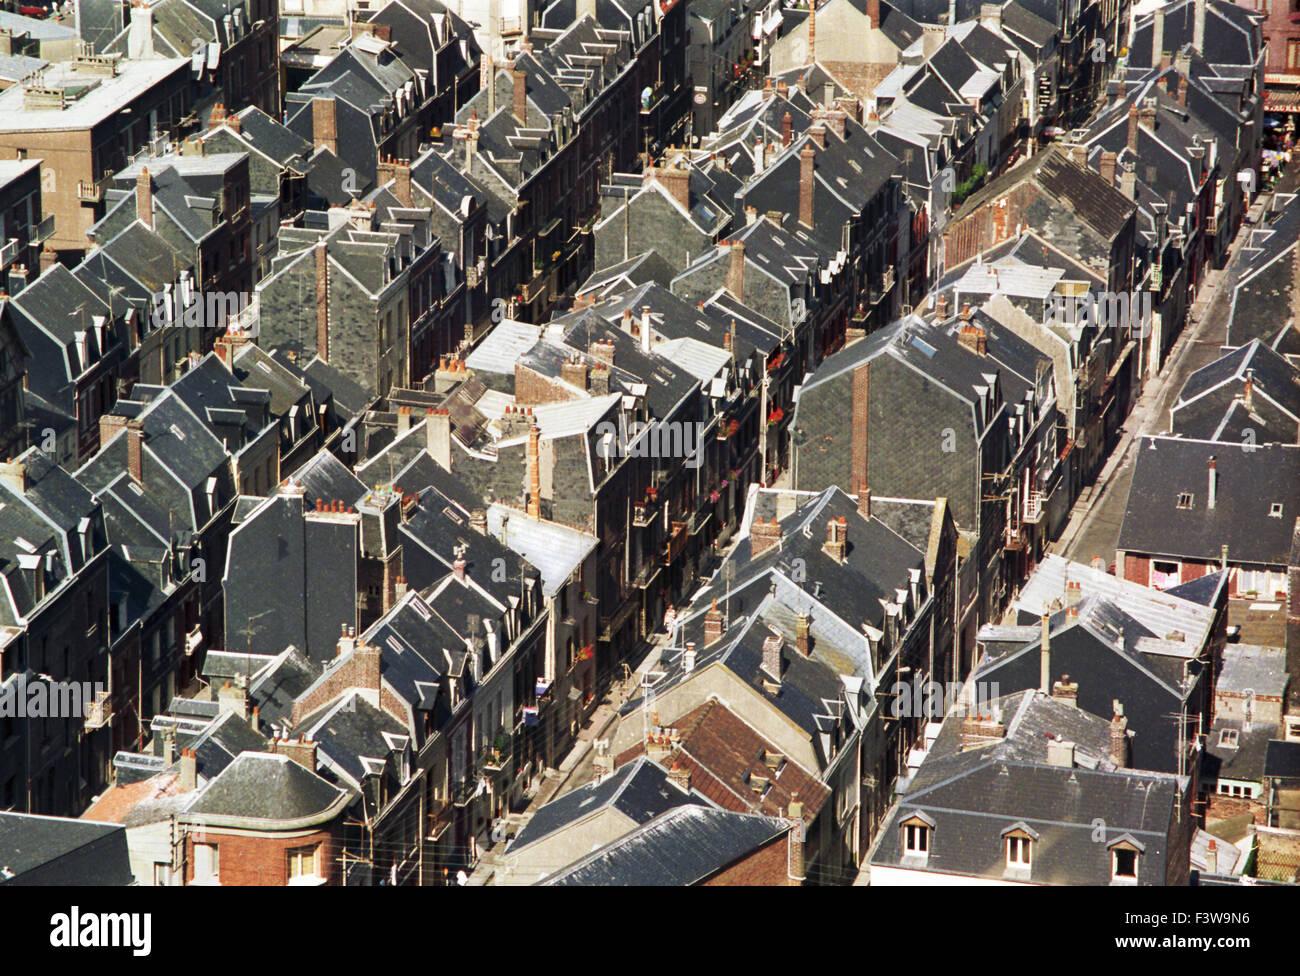 rooftops - Stock Image